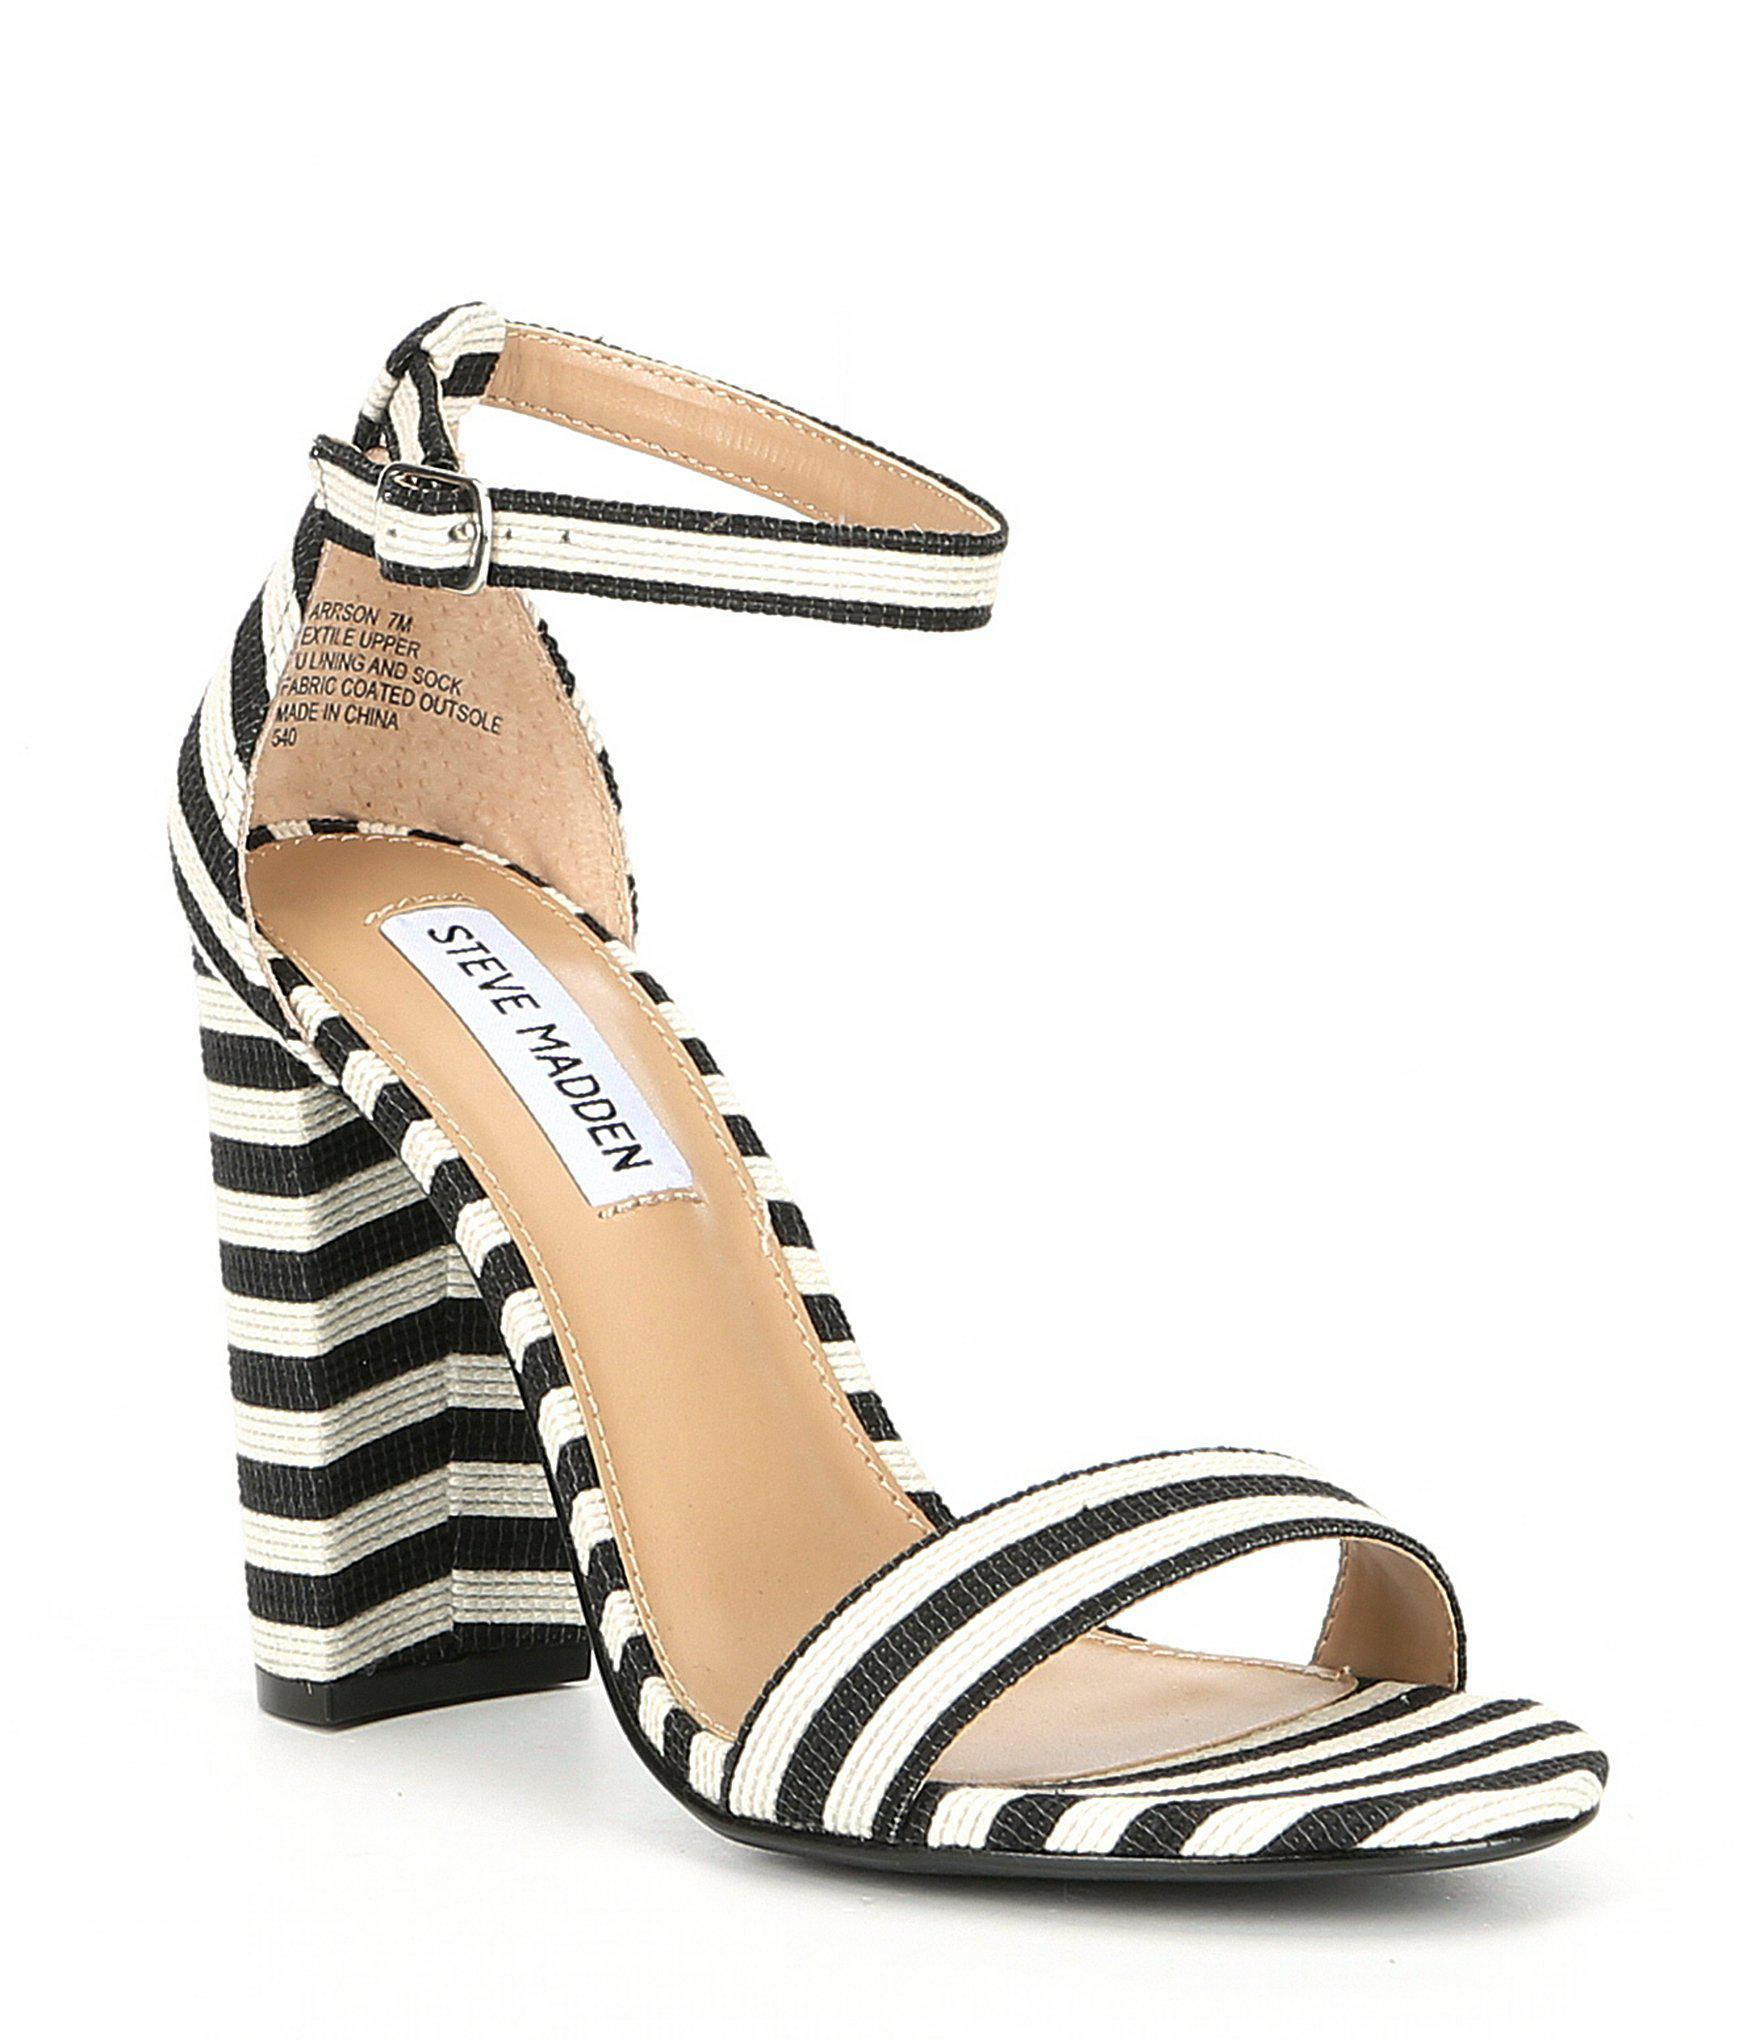 43a8df48df0 Steve Madden Black Carrson Ankle Strap Striped Block Heel Dress Sandals